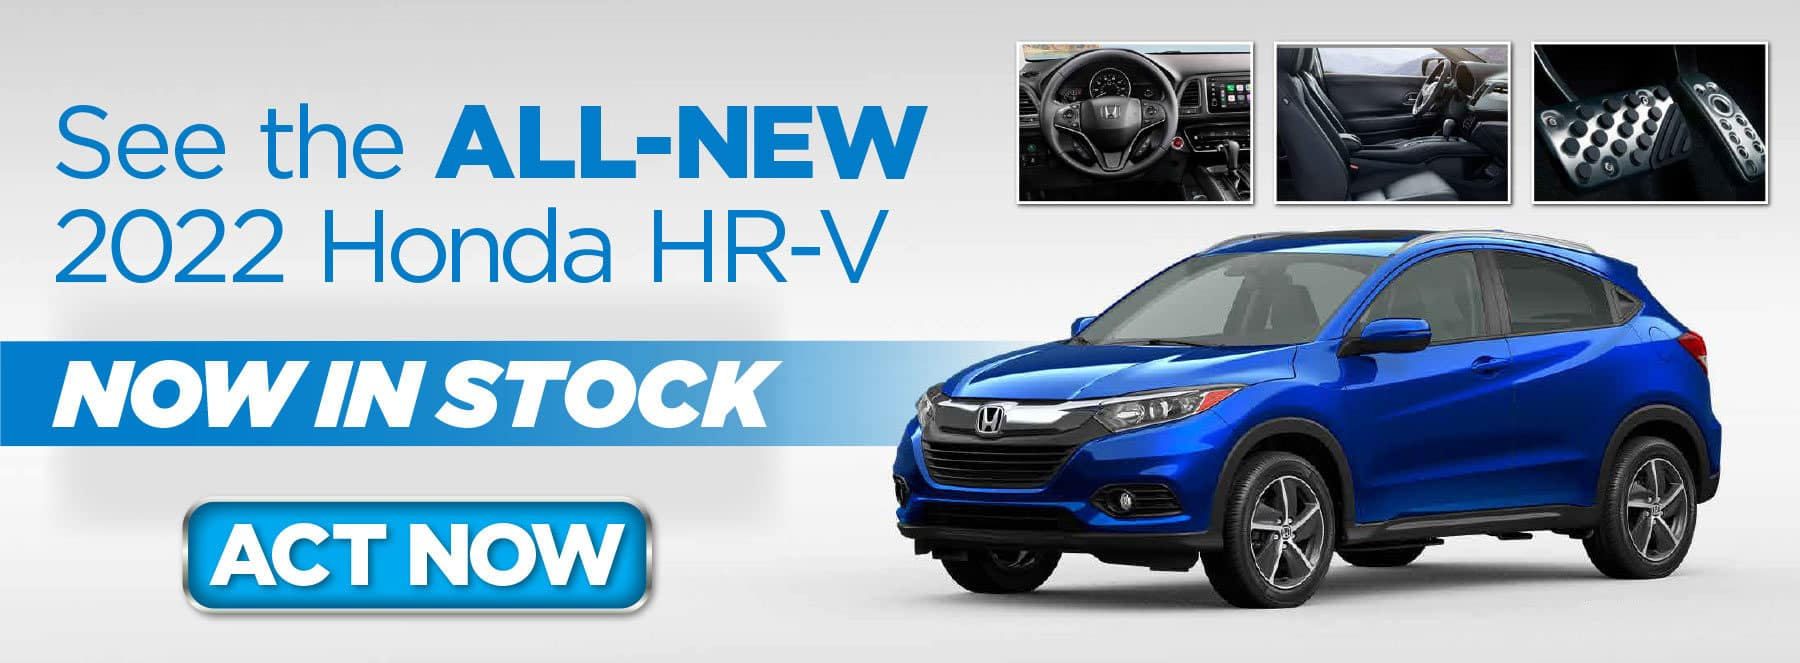 See the ALL-NEW 2022 Honda HR-V! NOW IN STOCK! ACT NOW!